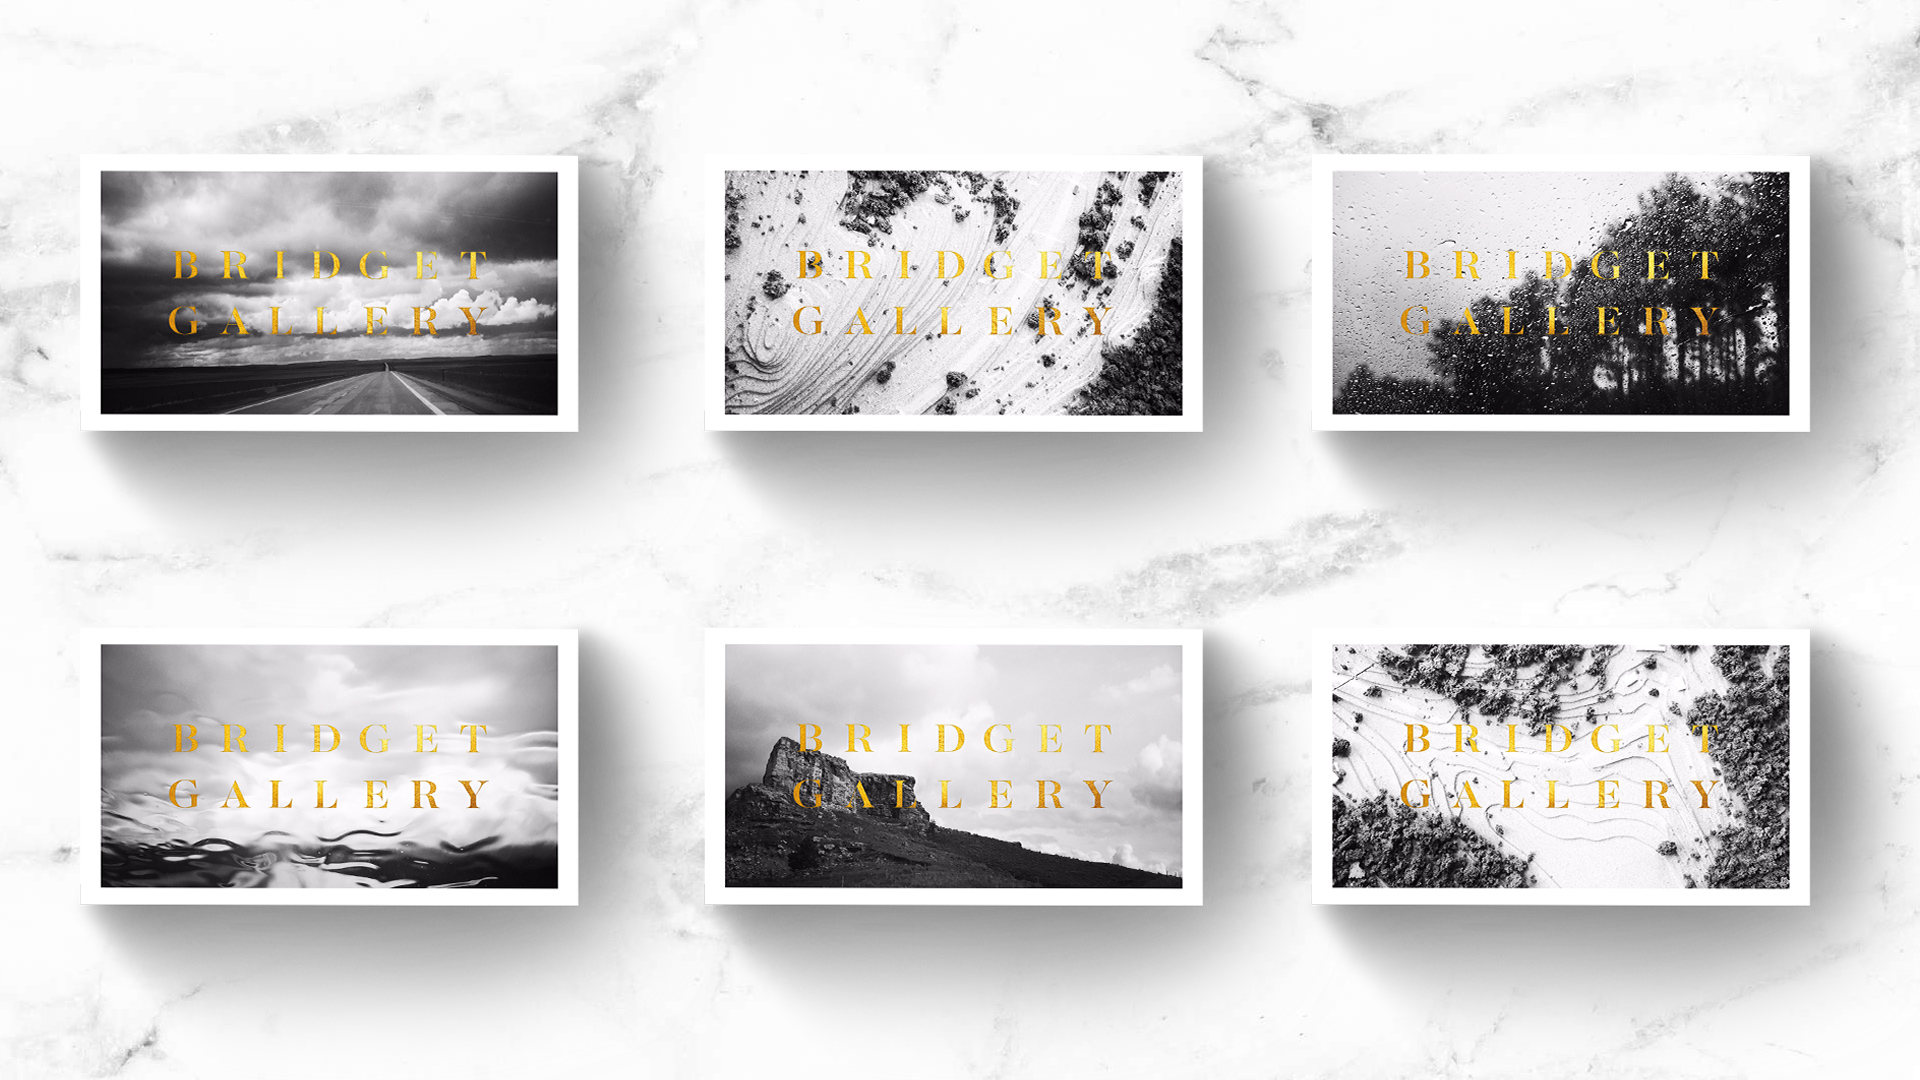 An overhead view of the business cards we designed for Bridget Gallery Photography